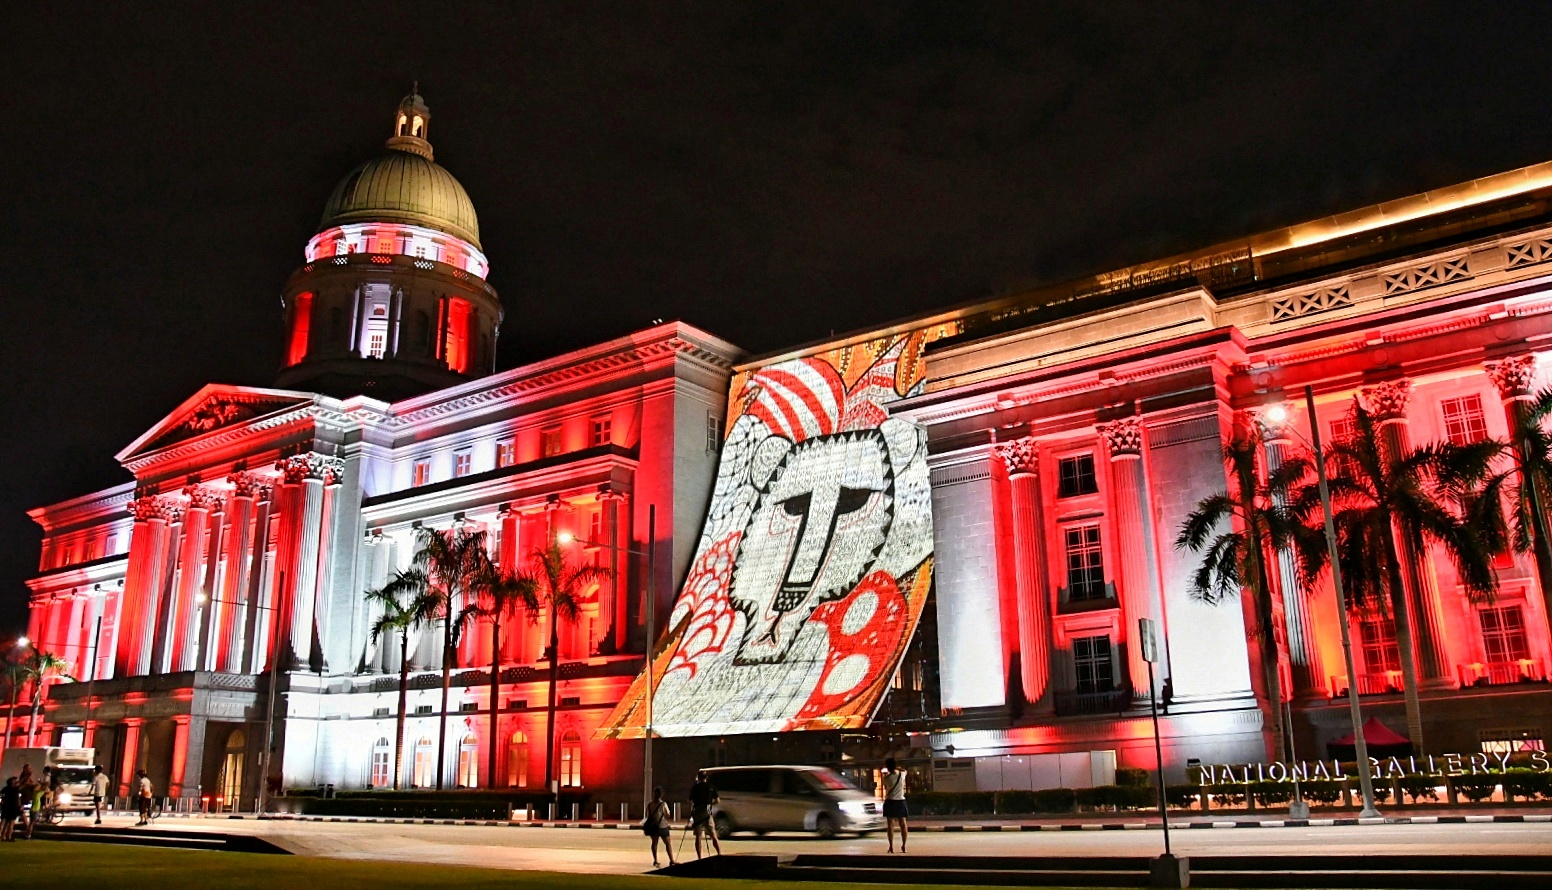 Naufal's artwork projected onto the facade of the National Gallery.